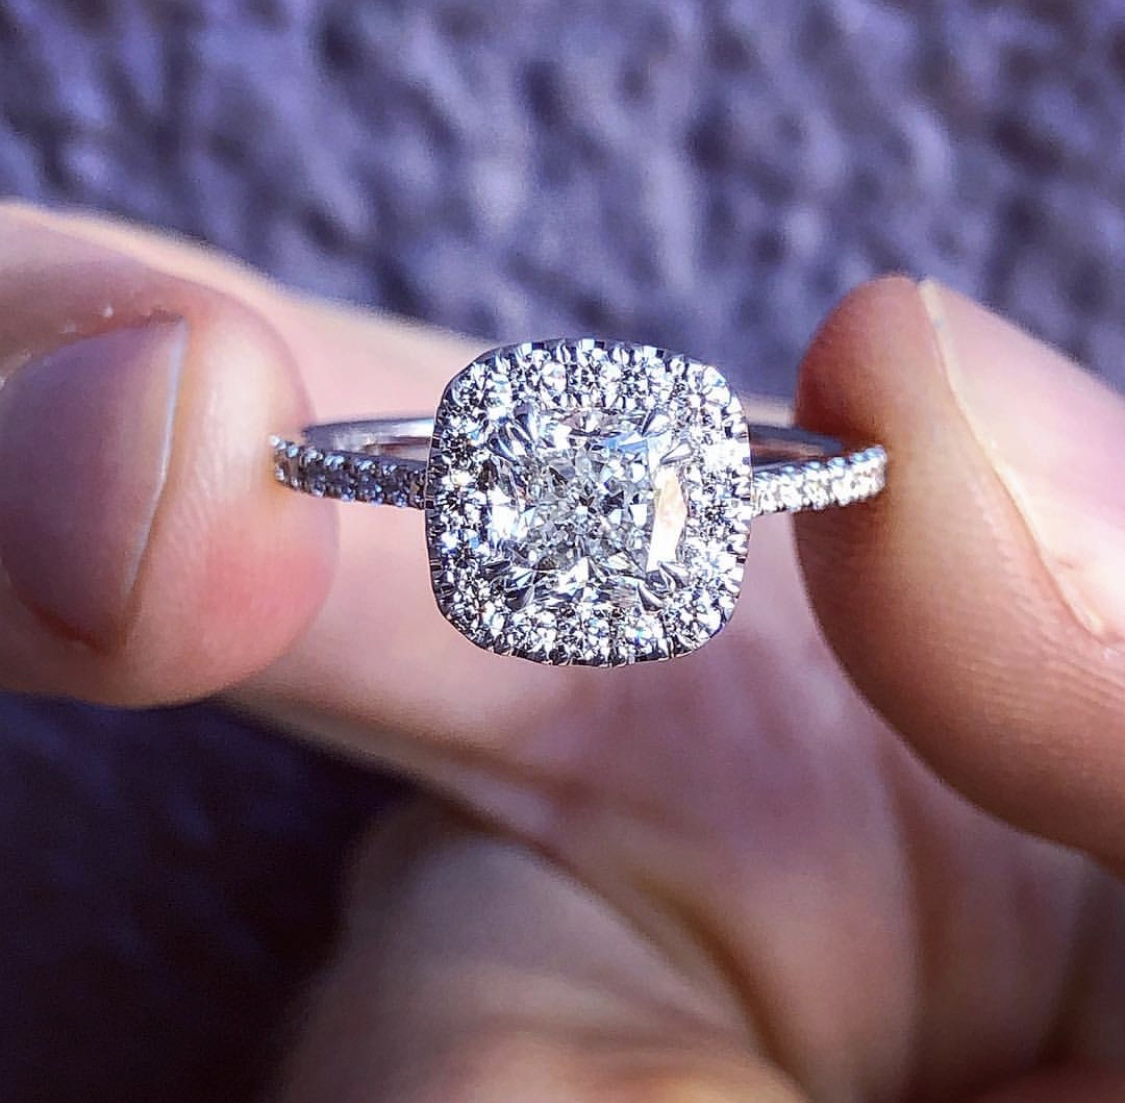 Great Deal Big Look For Less Value 1 71 Carat Certified Cushion Cut Diamond